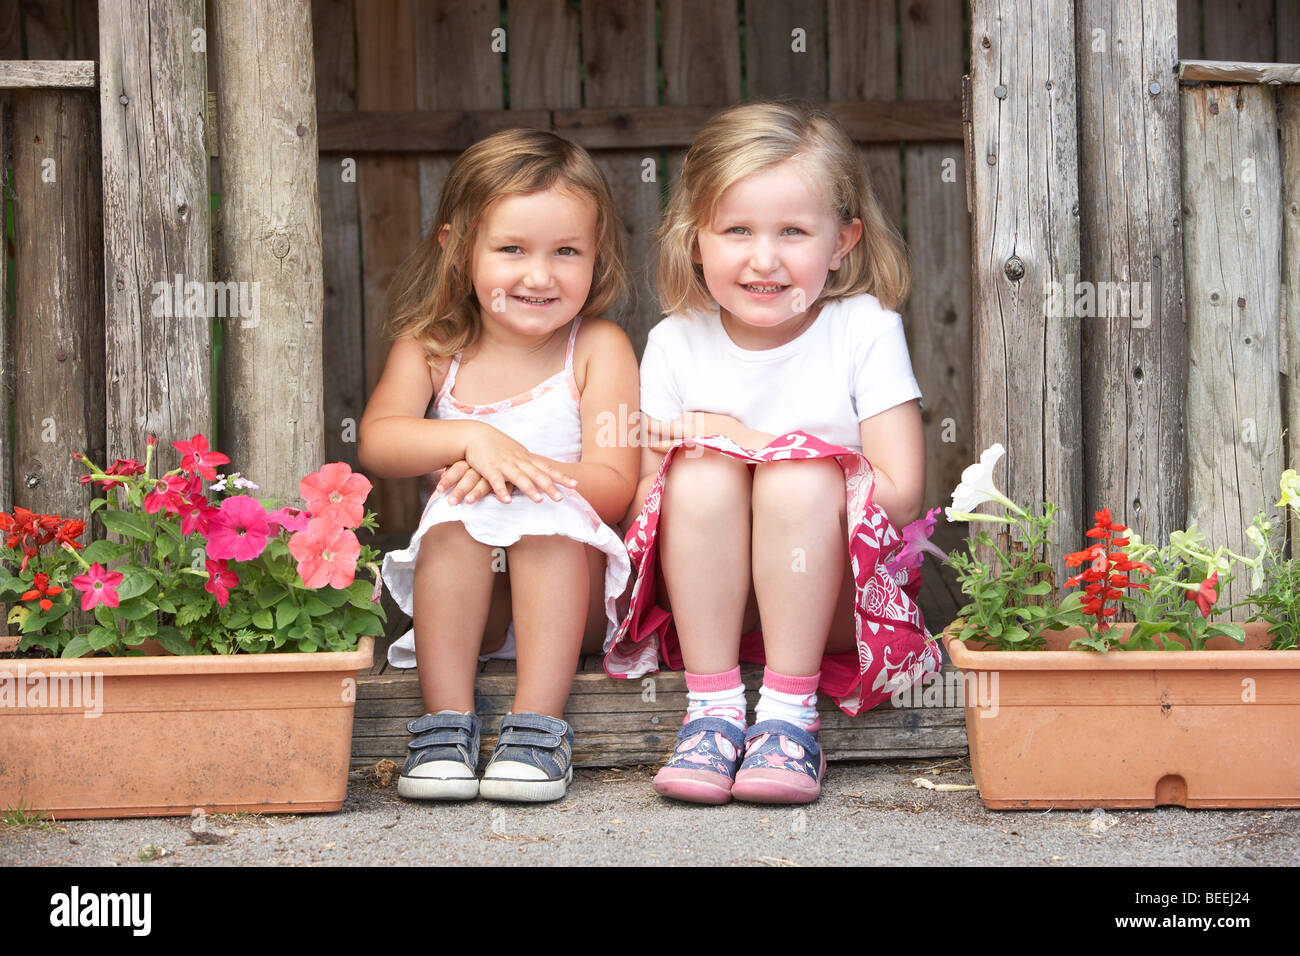 Two Young Girls Playing in Wooden House - Stock Image